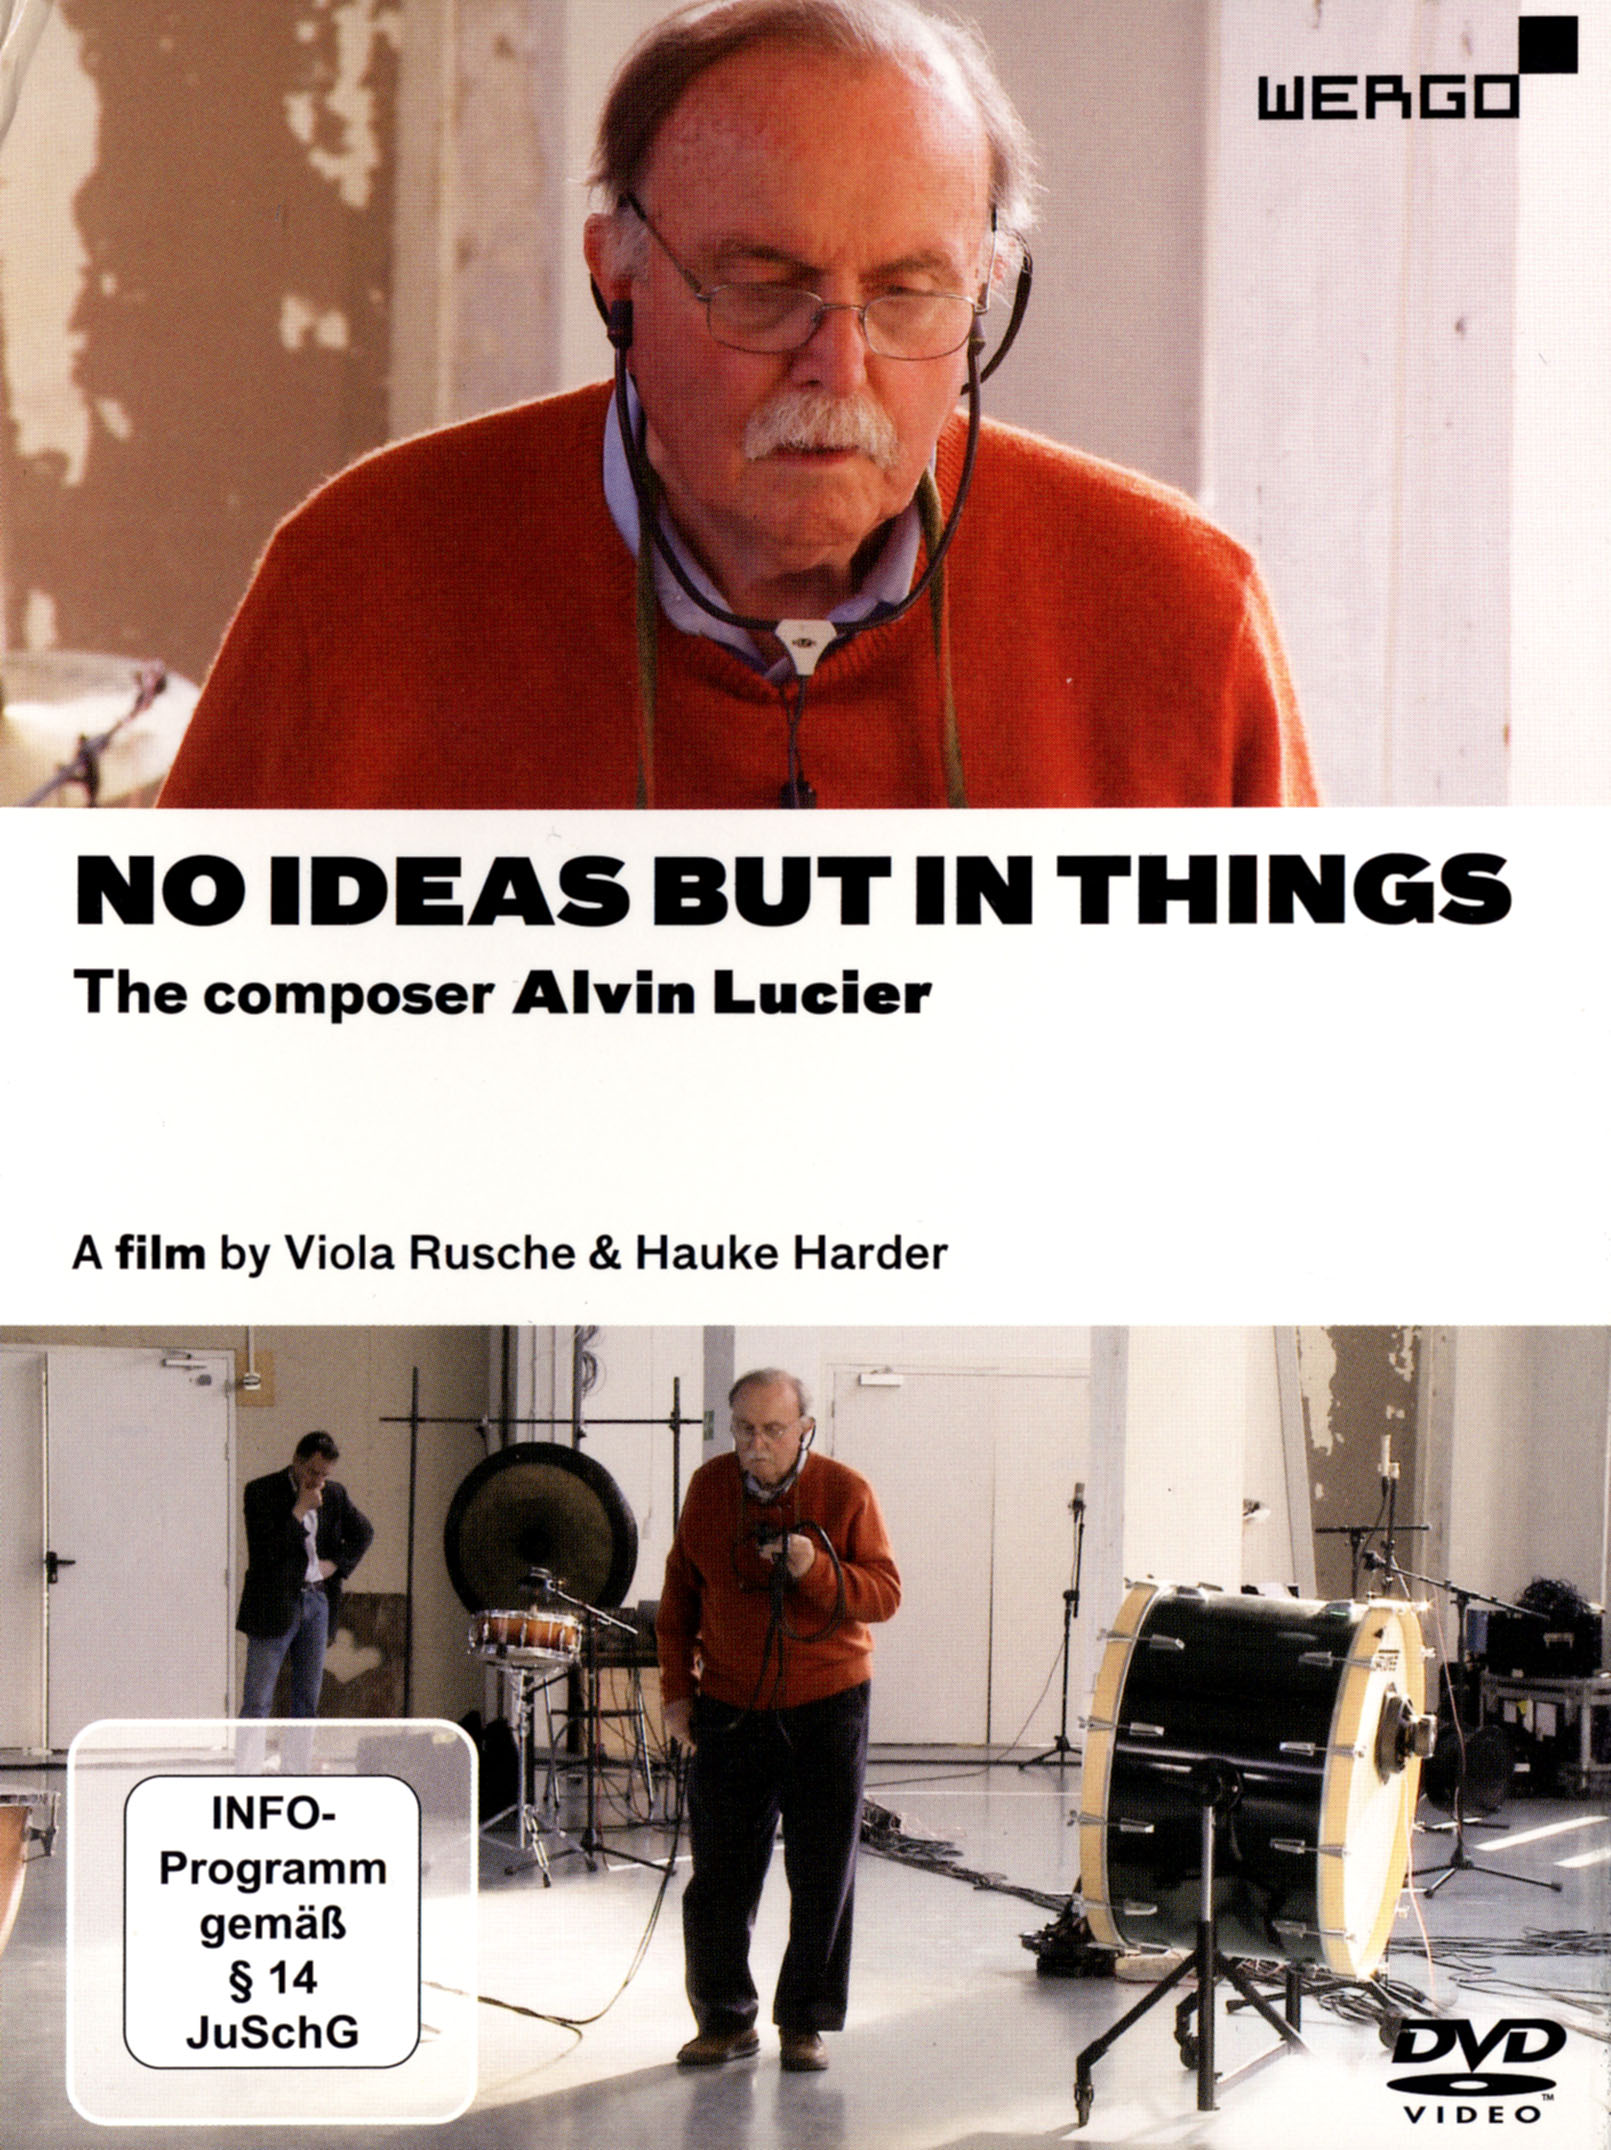 No Ideas But in Things: The Composer Alvin Lucier